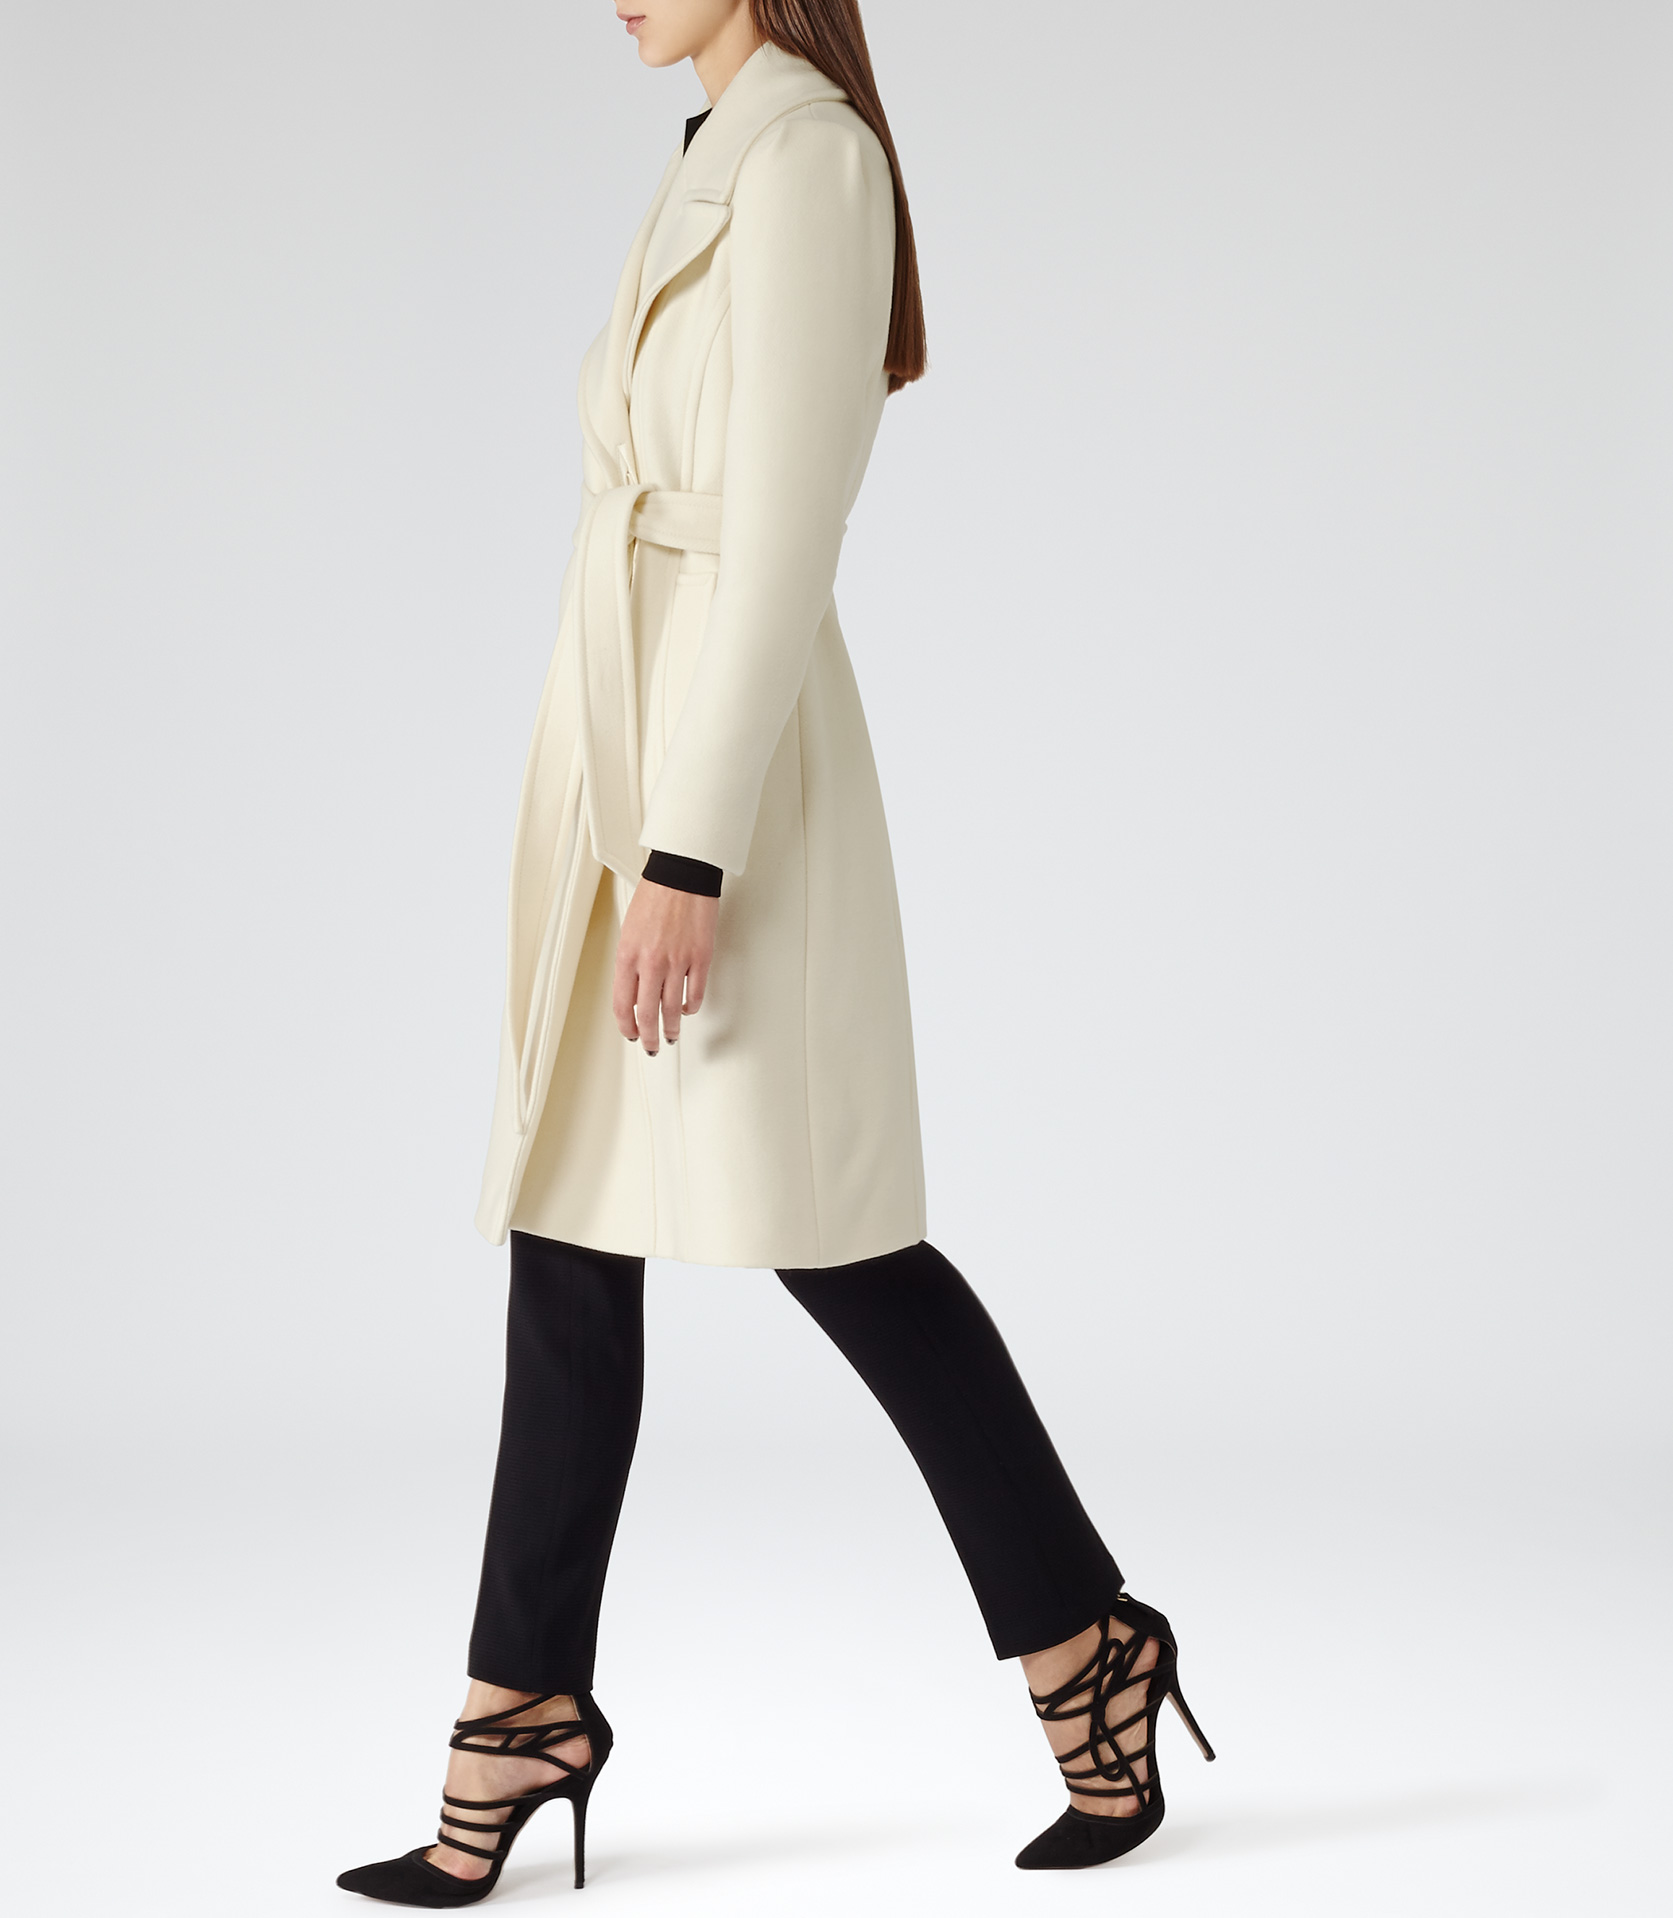 Envy Cream Belted Tailored Coat - REISS